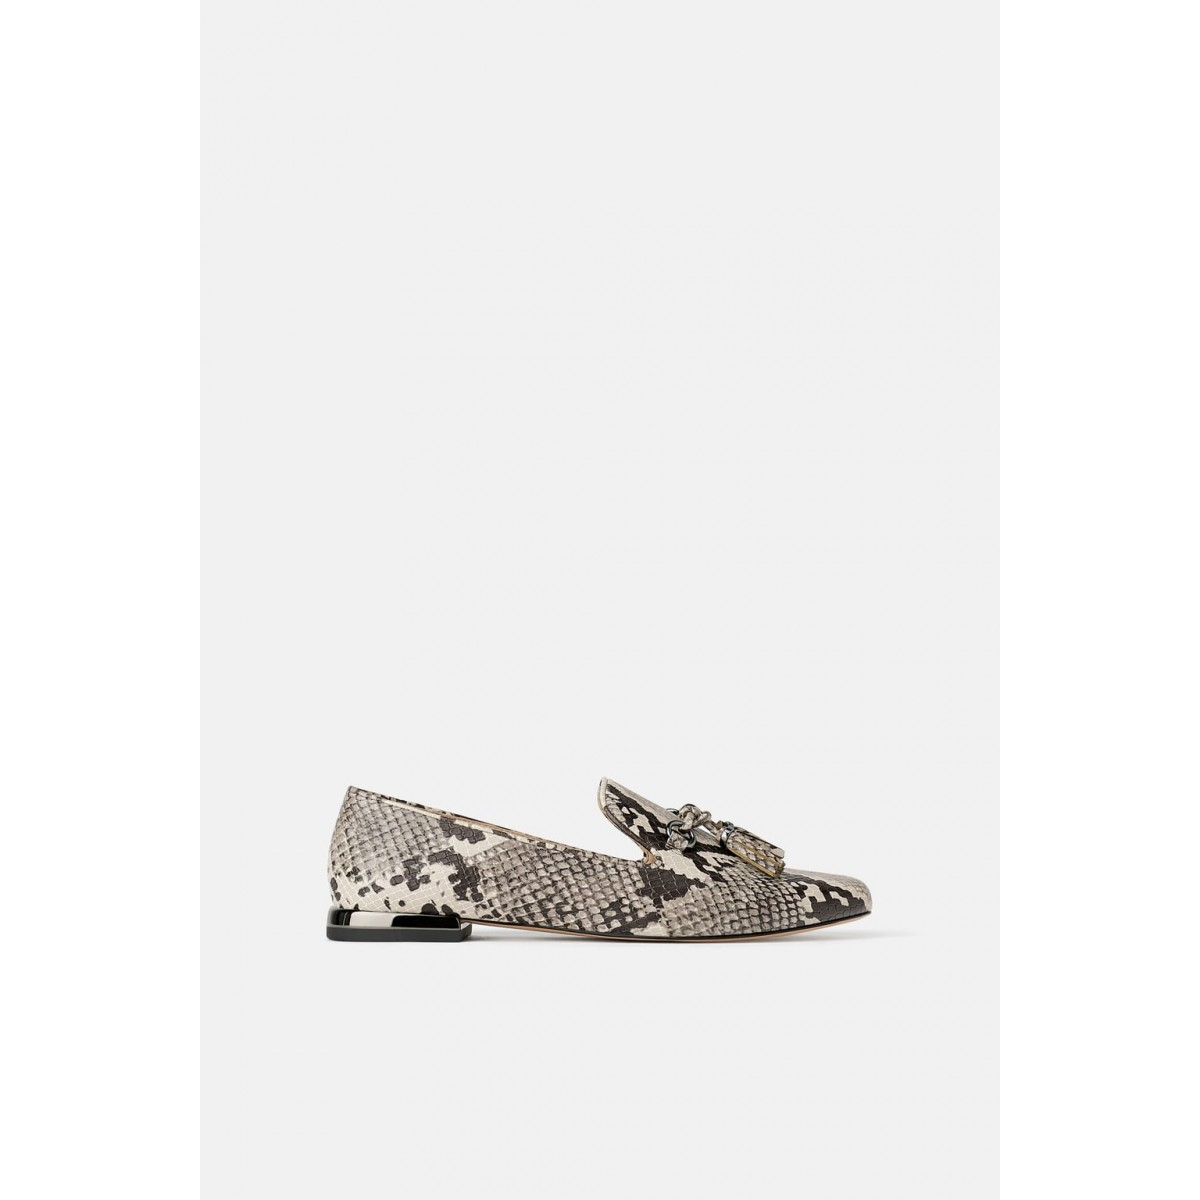 Zara Animal Print Tassel loafers